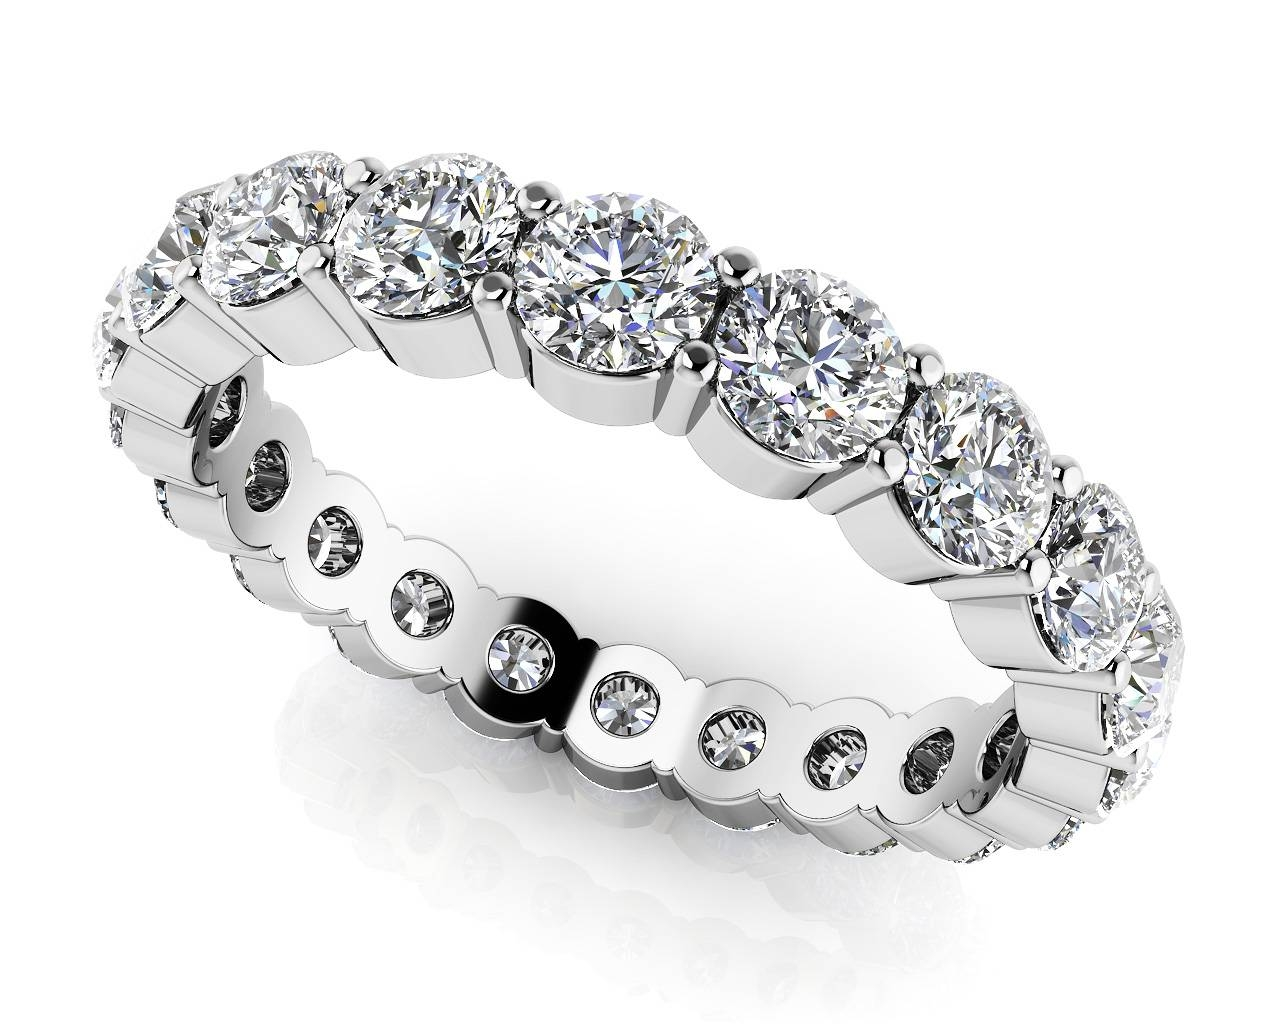 Design Your Own Diamond Anniversary Ring & Eternity Ring For Latest Anniversary Rings (View 9 of 25)